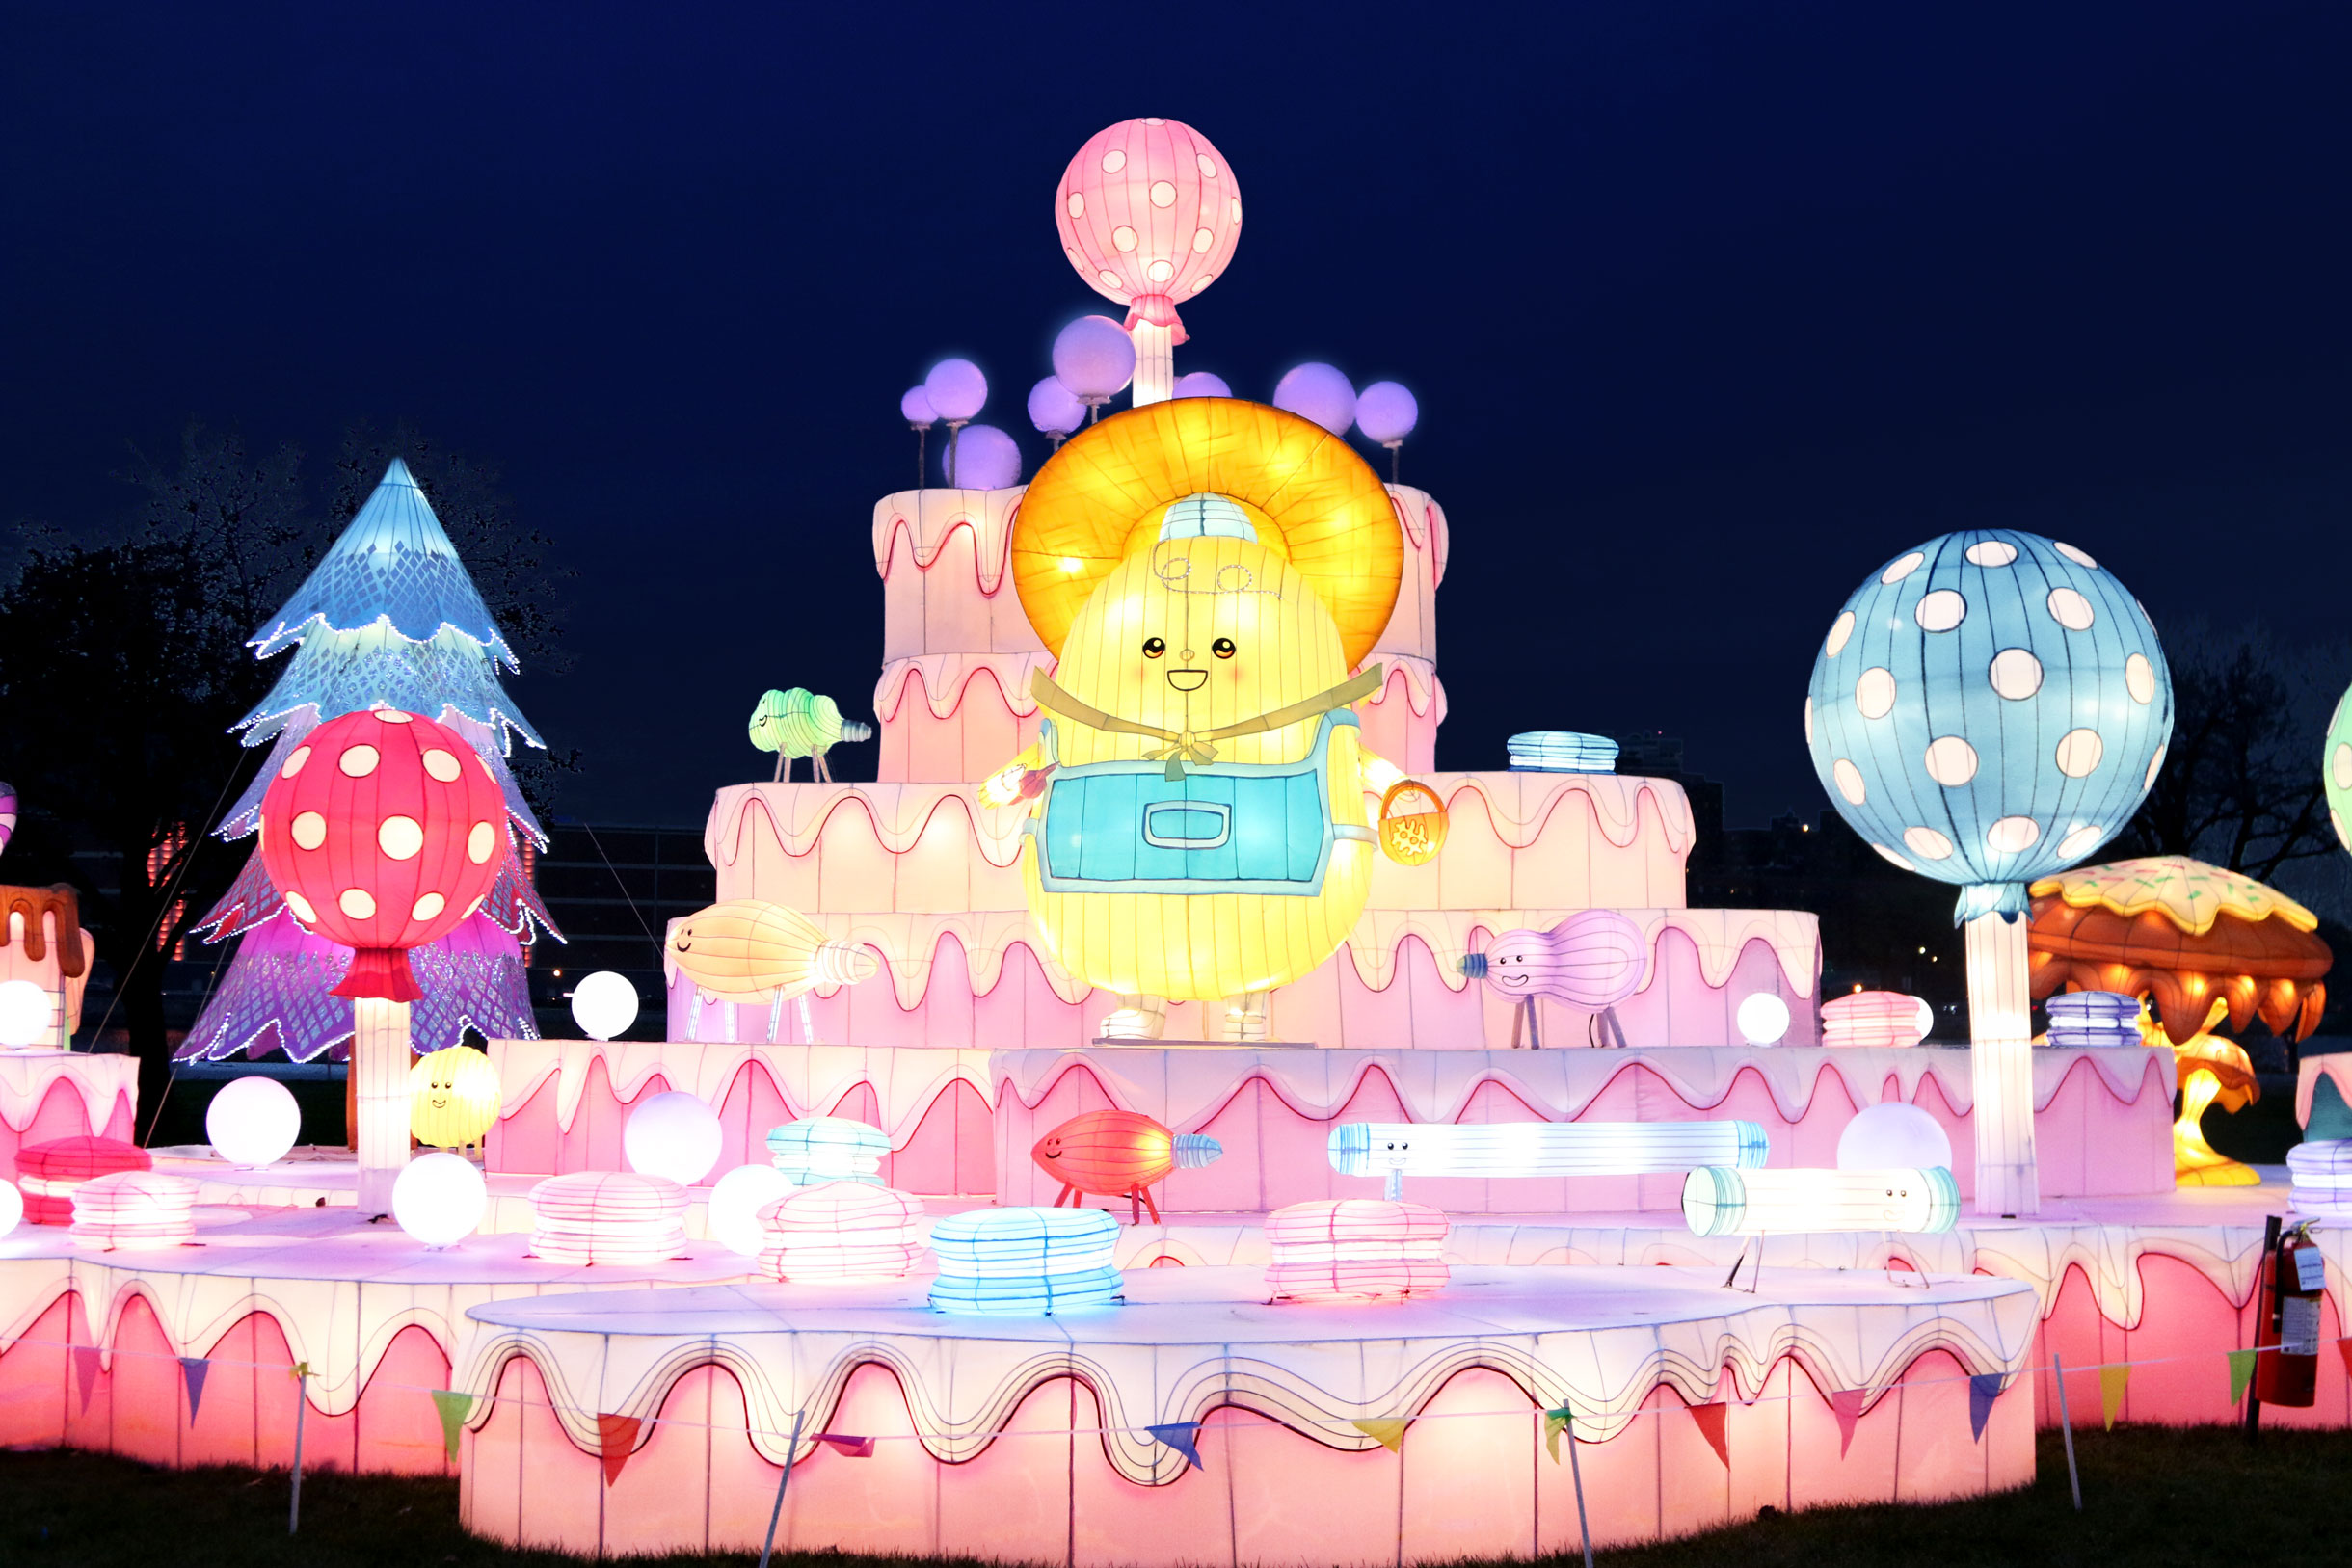 the-cake-terraces-the-sweet-dream-light-arts-luminocity-festival-rendered-image